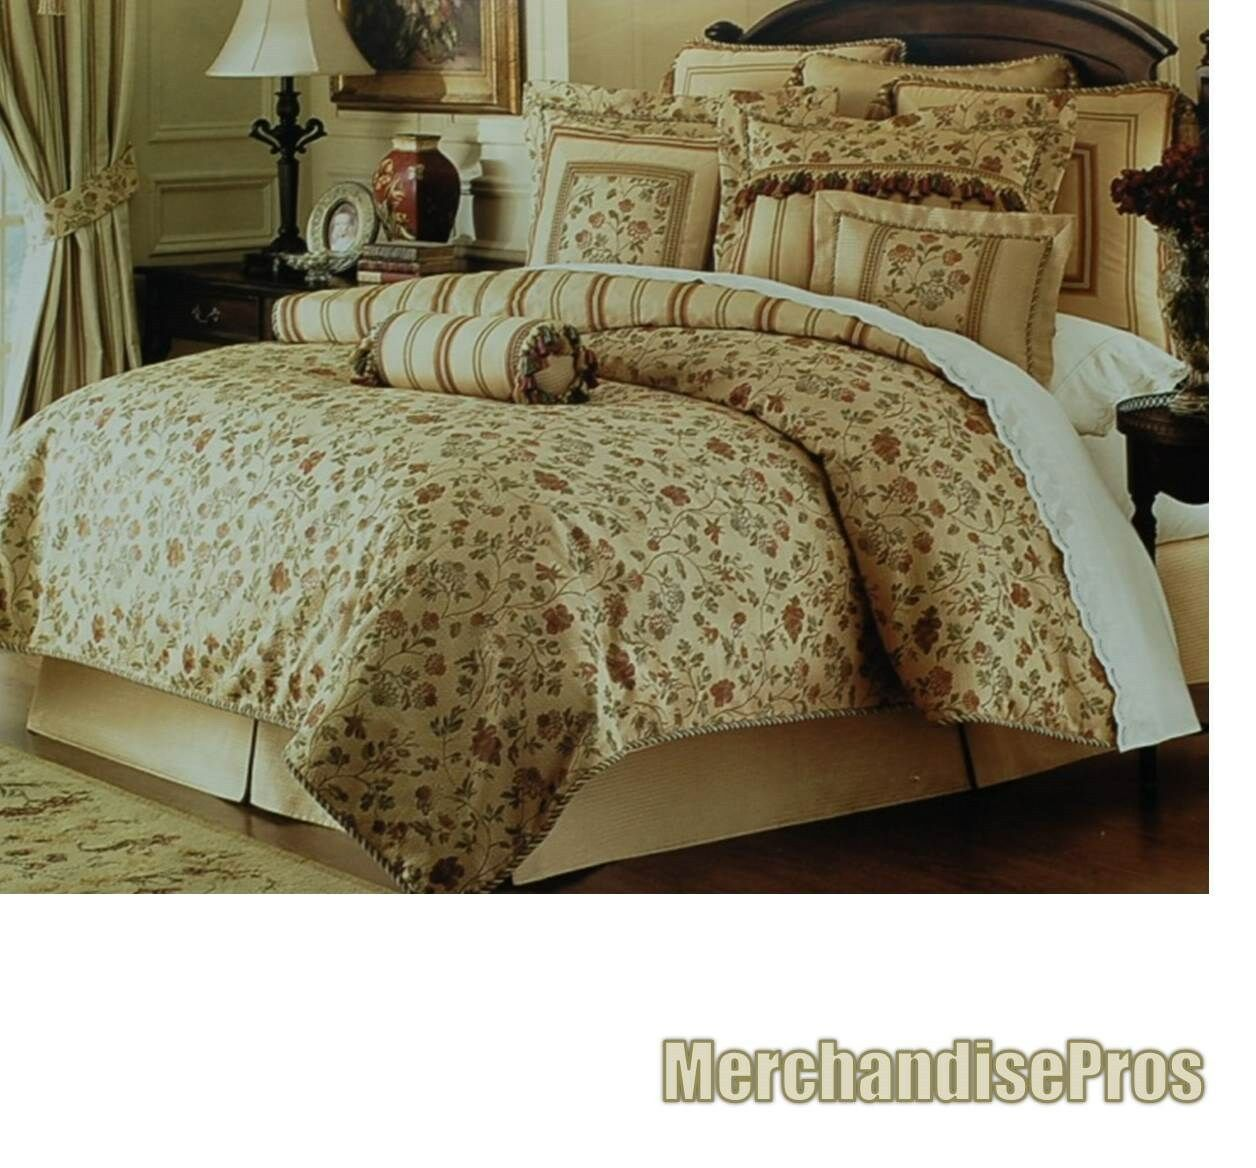 4 PC WATERFORD LINENS 'TIERNEY' CALIFORNIA CAL KING COMFORTER SET 110x96  NEW